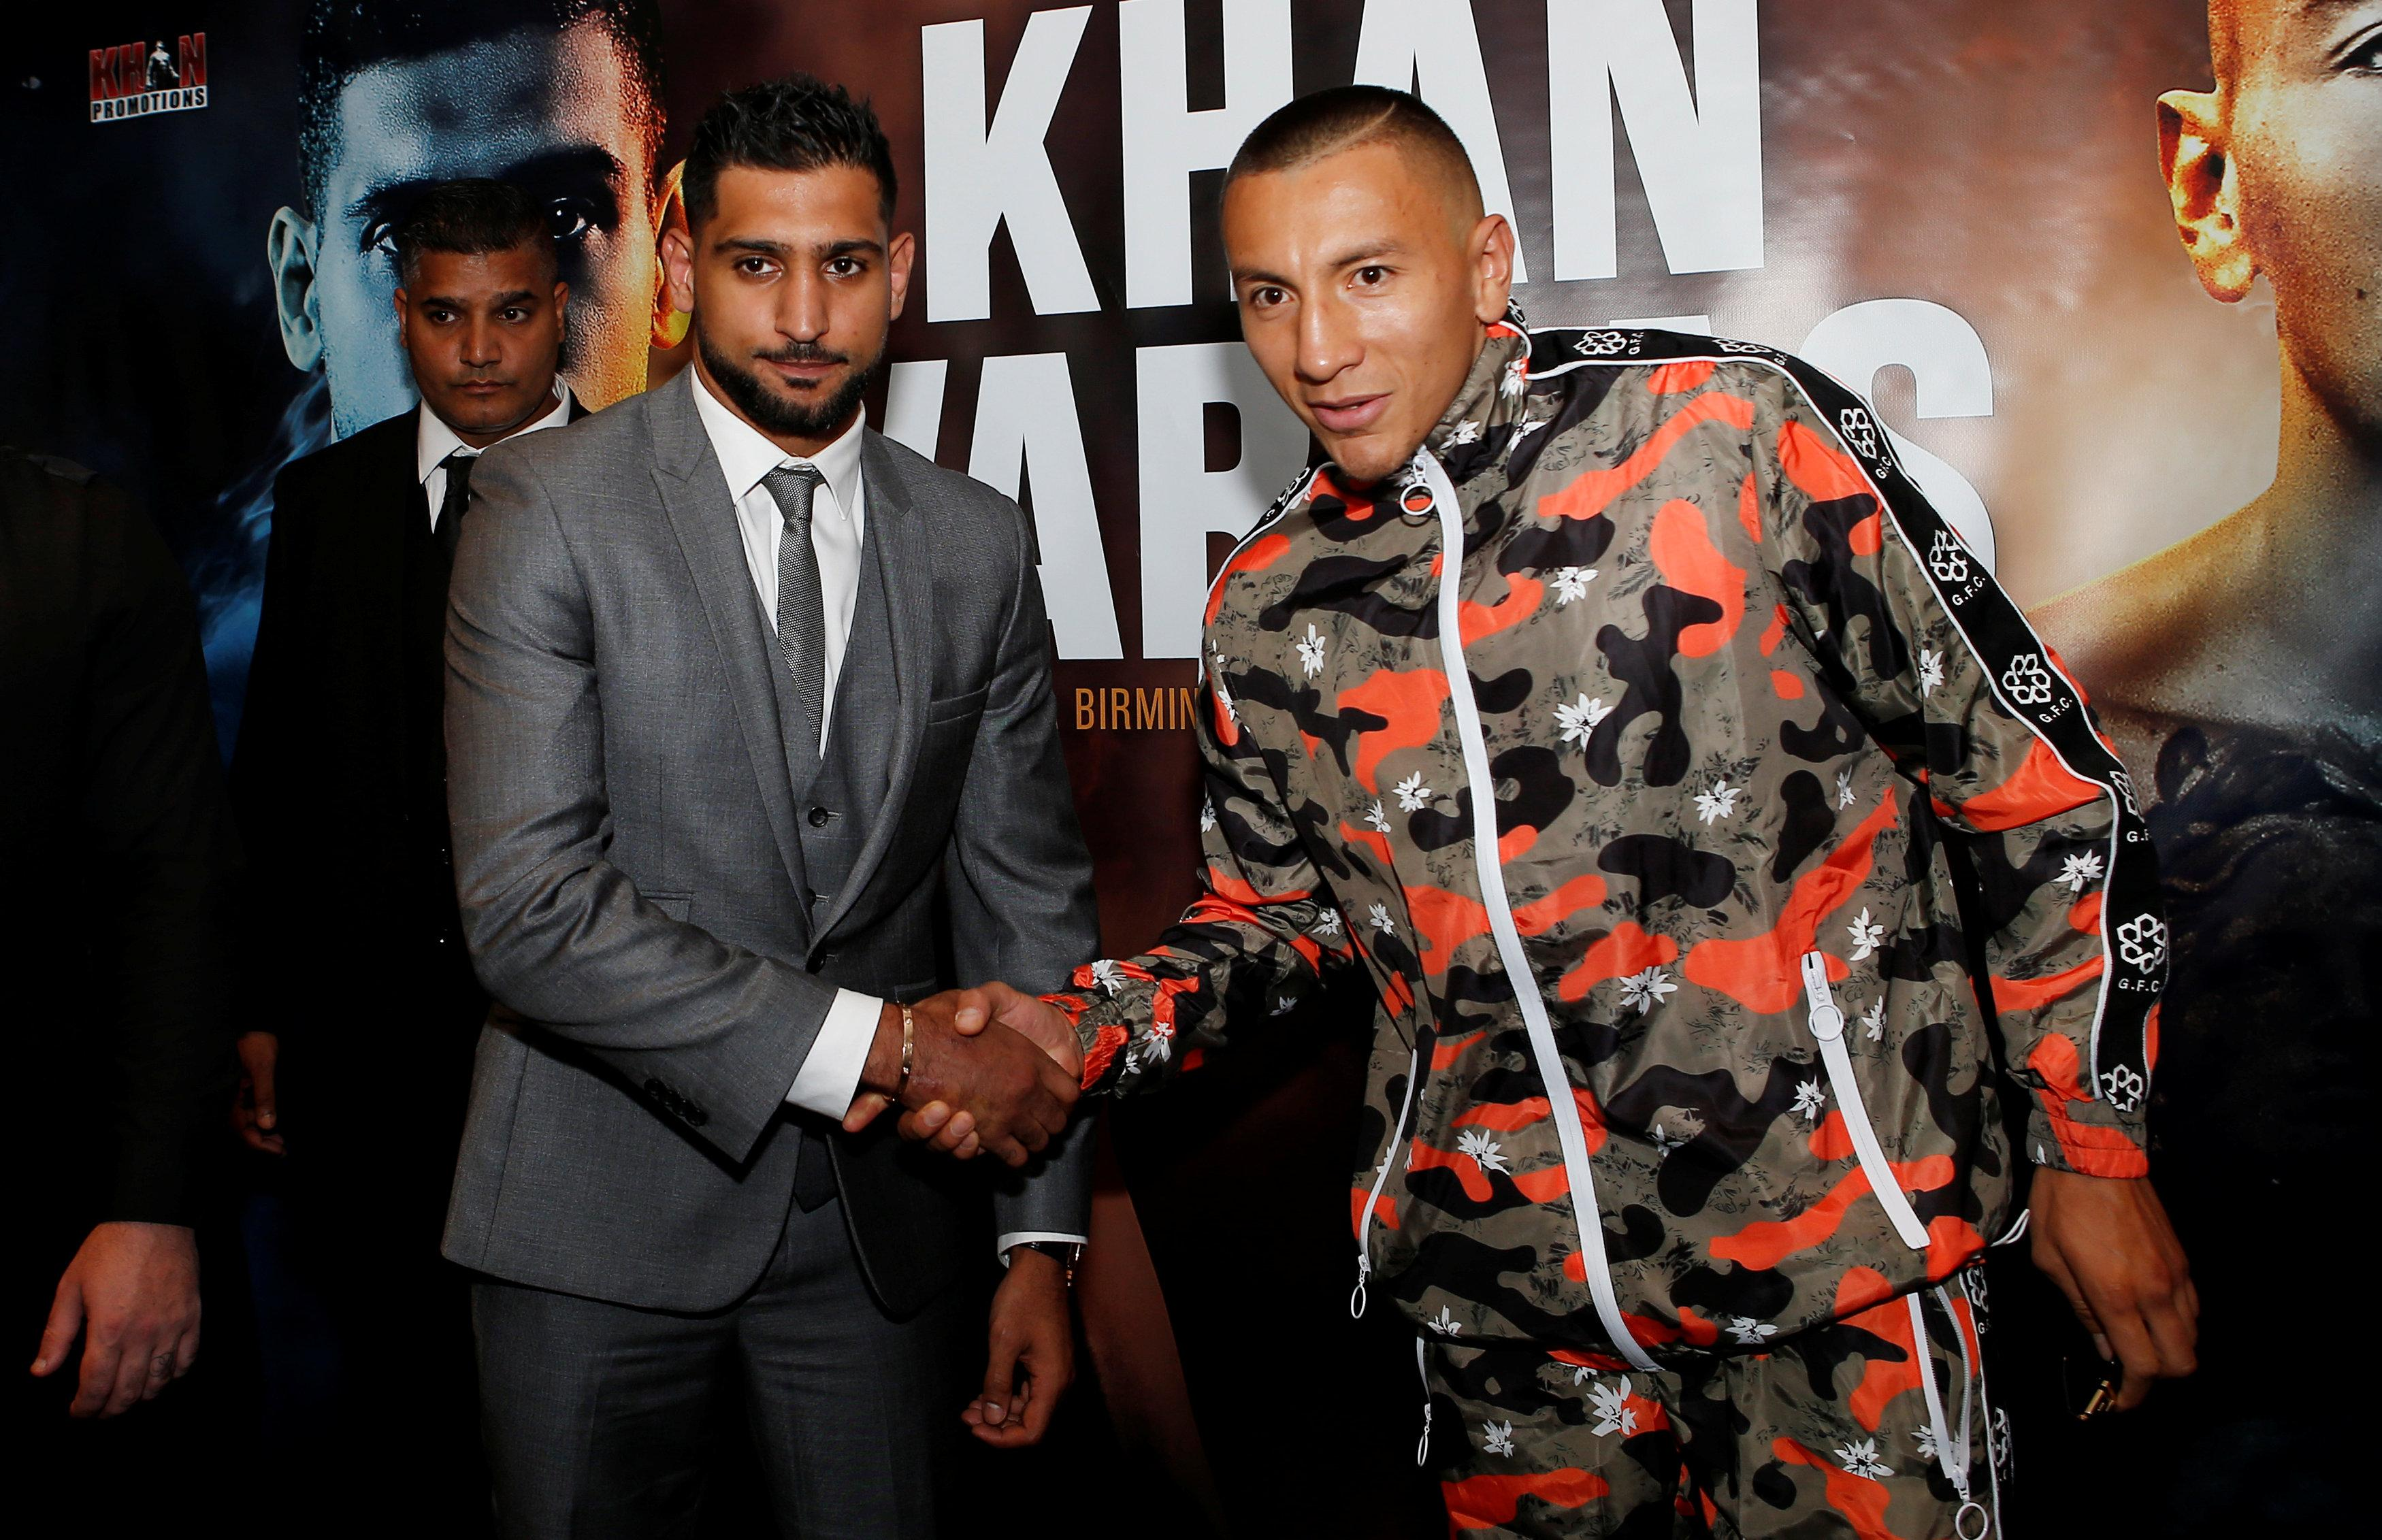 Amir Khan will face Colombian Samuel Vargas on September 8